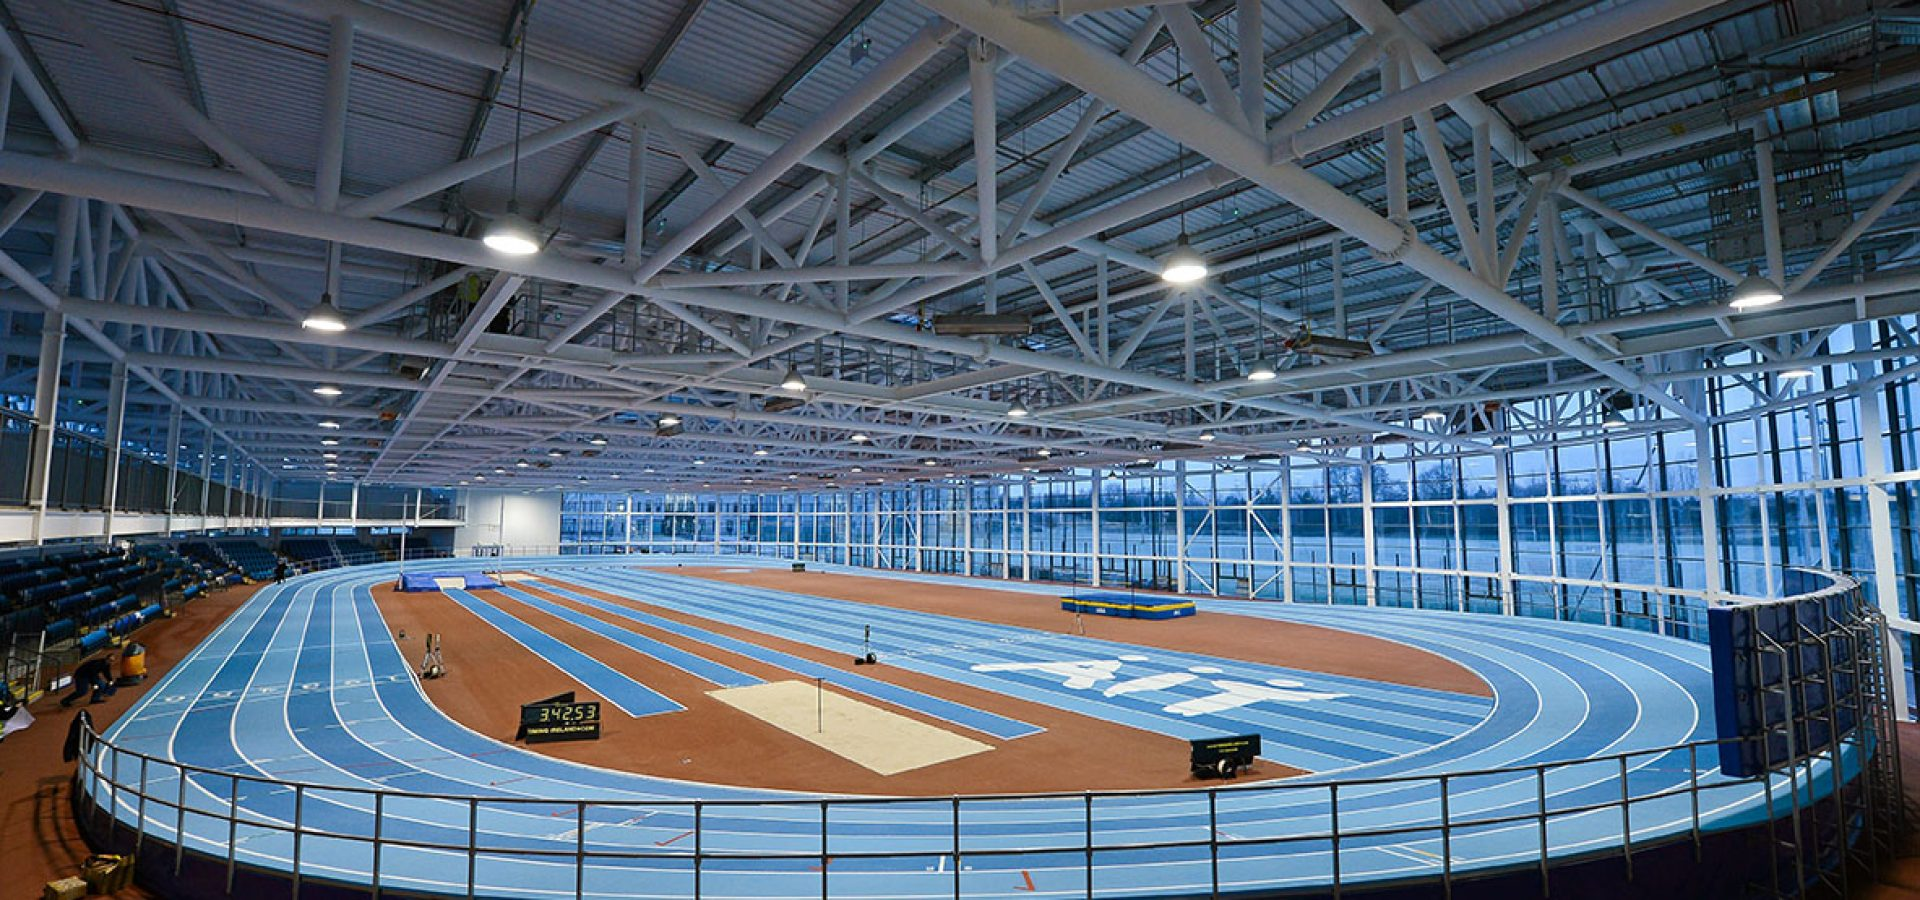 23 January 2013; A general view of the Athlone Institute of Technology International Arena. The €10 million facility has a footprint of 6,818m² and an overall building floor area of 9,715m². Some 850 tonnes of structural steel and 50,000 concrete blocks went into the construction of the facility which can house 2,000 spectators. Athlone Institute of Technology, Athlone, Co. Westmeath. Picture credit: Stephen McCarthy / SPORTSFILE *** NO REPRODUCTION FEE ***